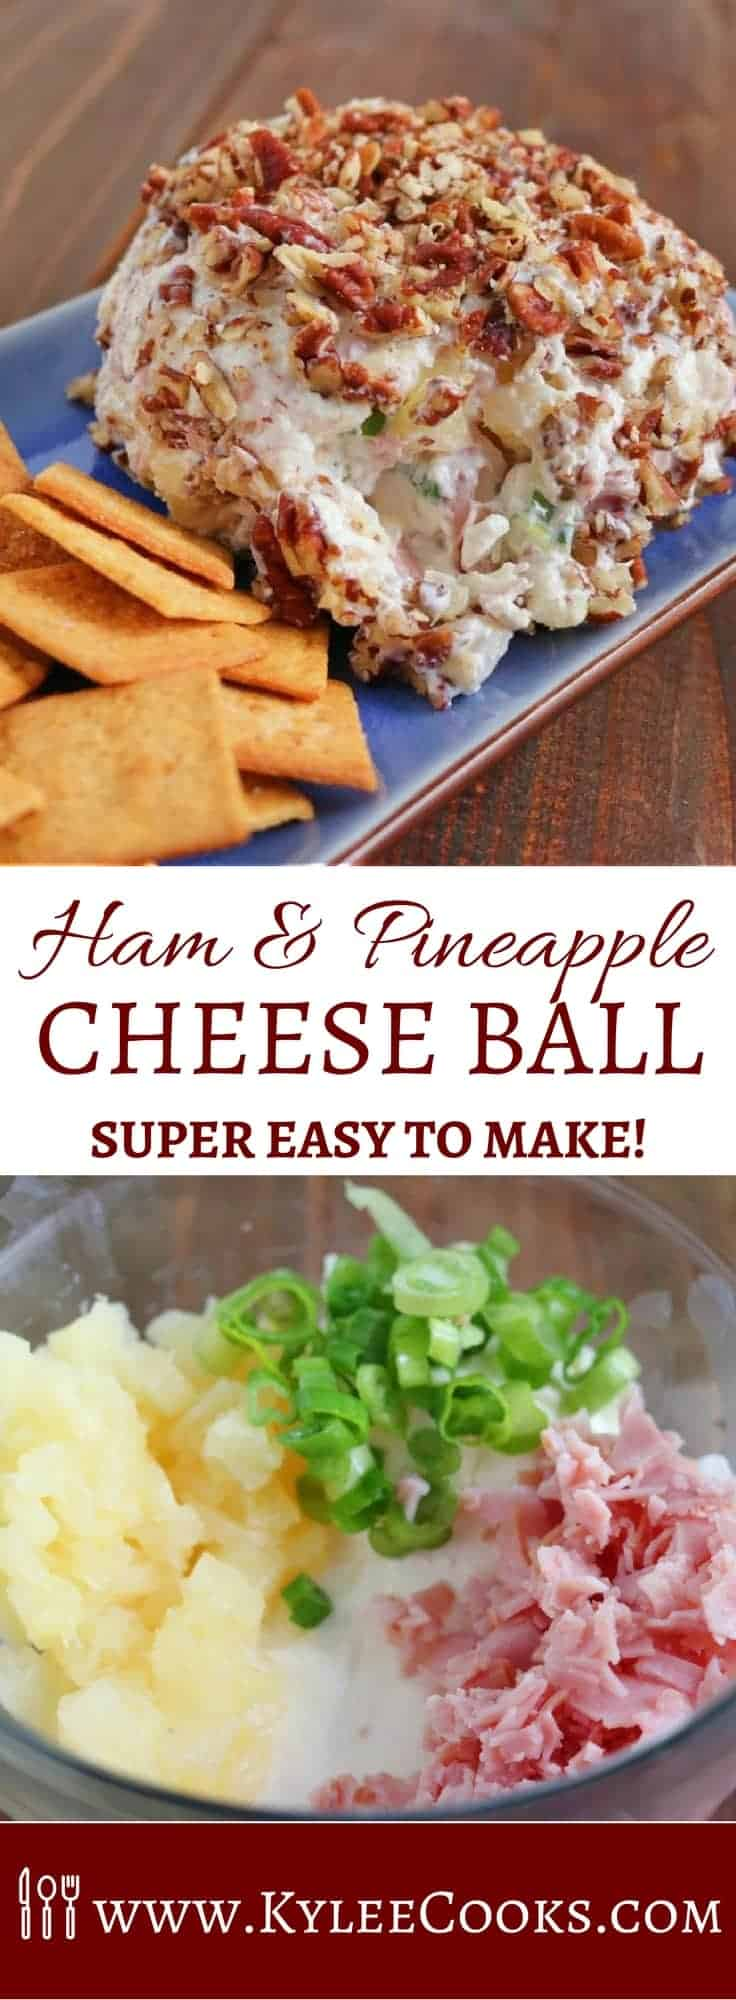 Easy and fast to mix up, and place in the fridge for later. A great make ahead appetizer, this Ham & Pineapple Cheese Ball is sure to please the majority of guests!